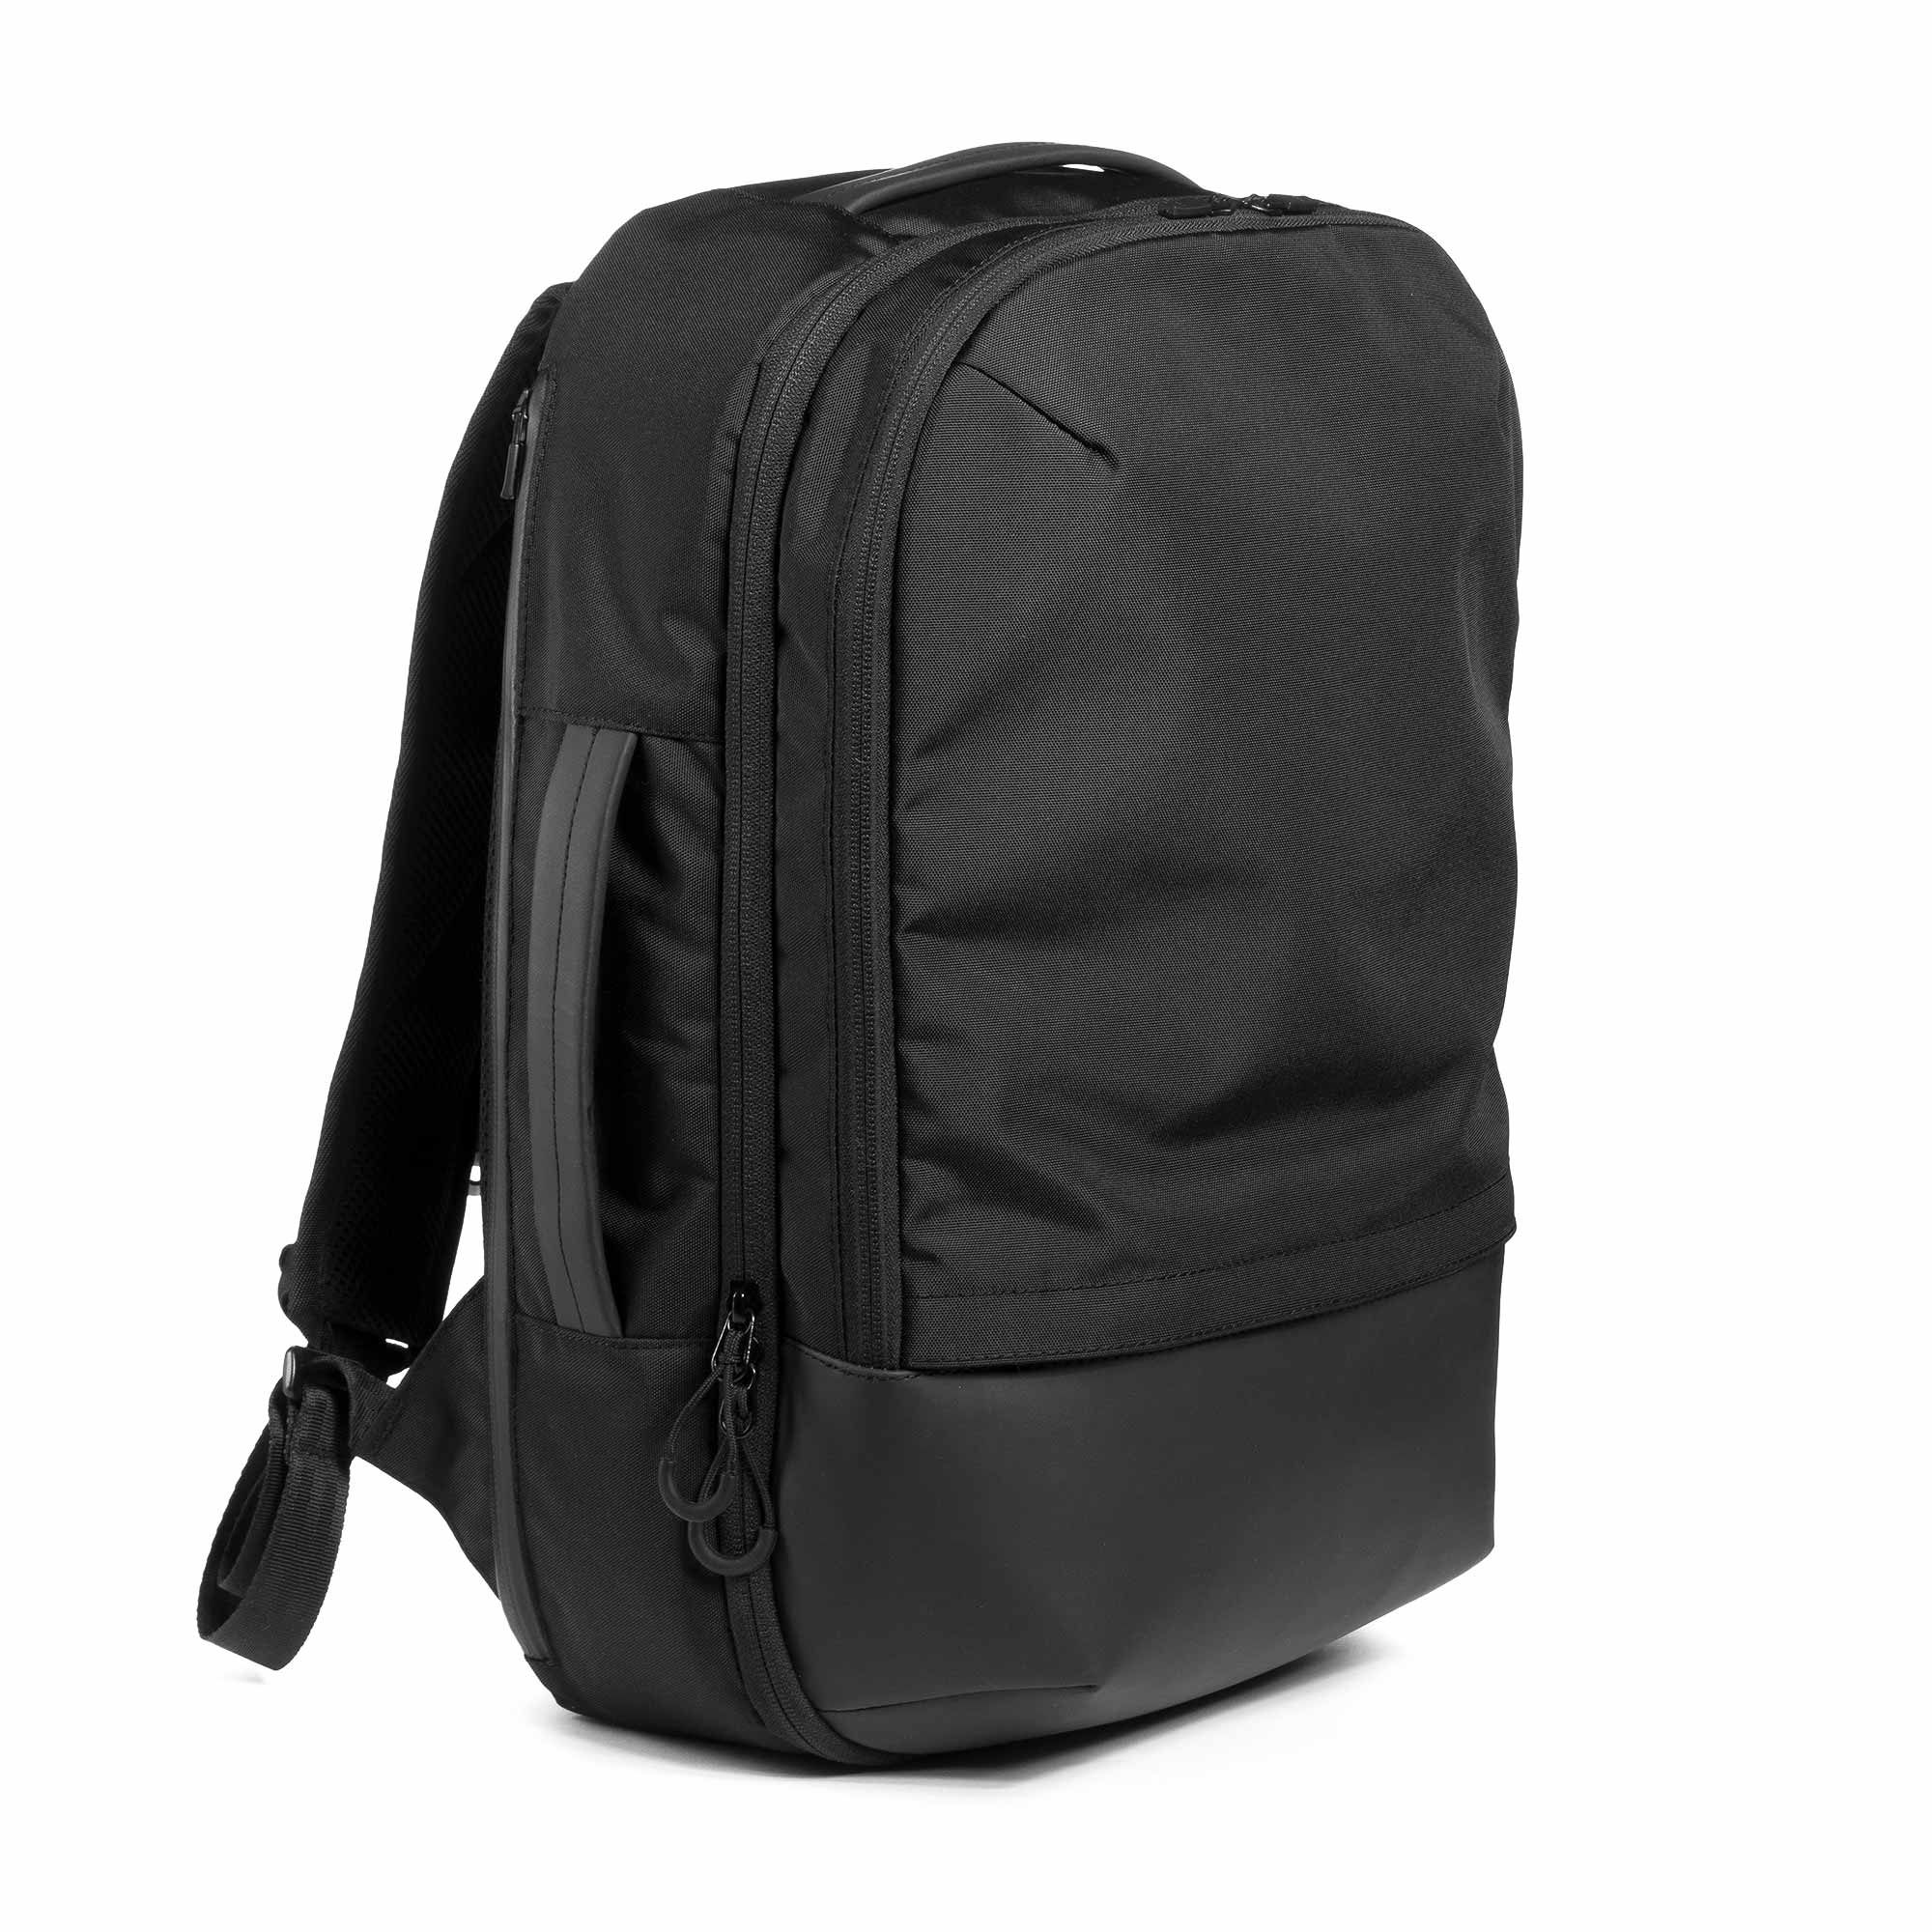 Invisible CARRY-ON - minimal travel backpack - black — OPPOSETHIS